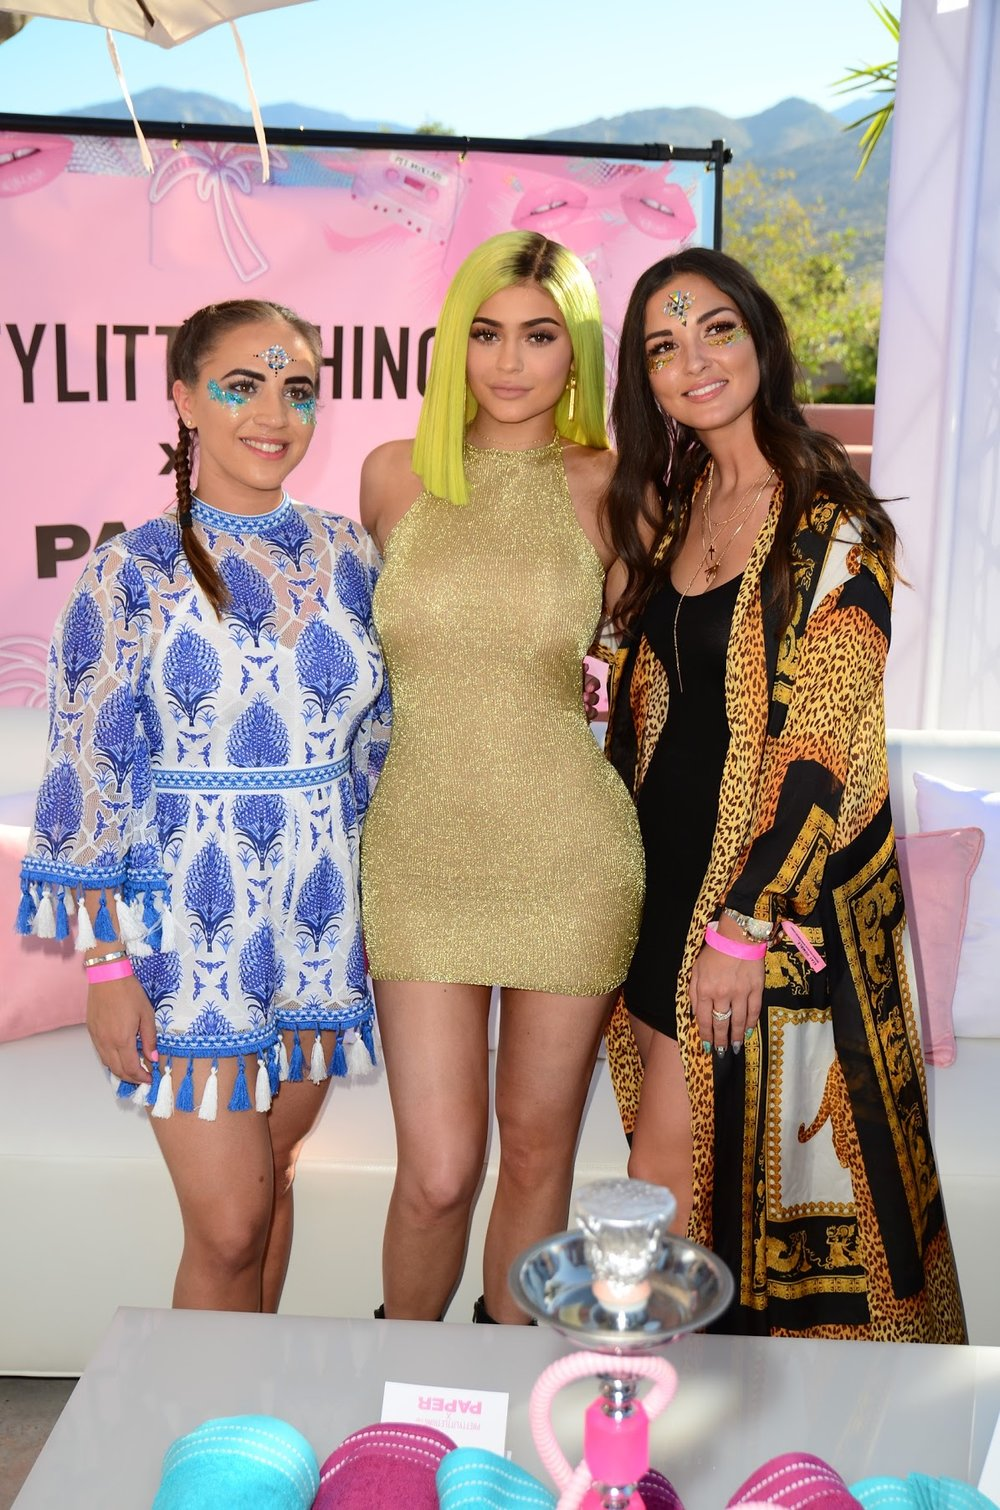 VIP PRESS PARTIES - From Coachella VIP to Topshop to much more...